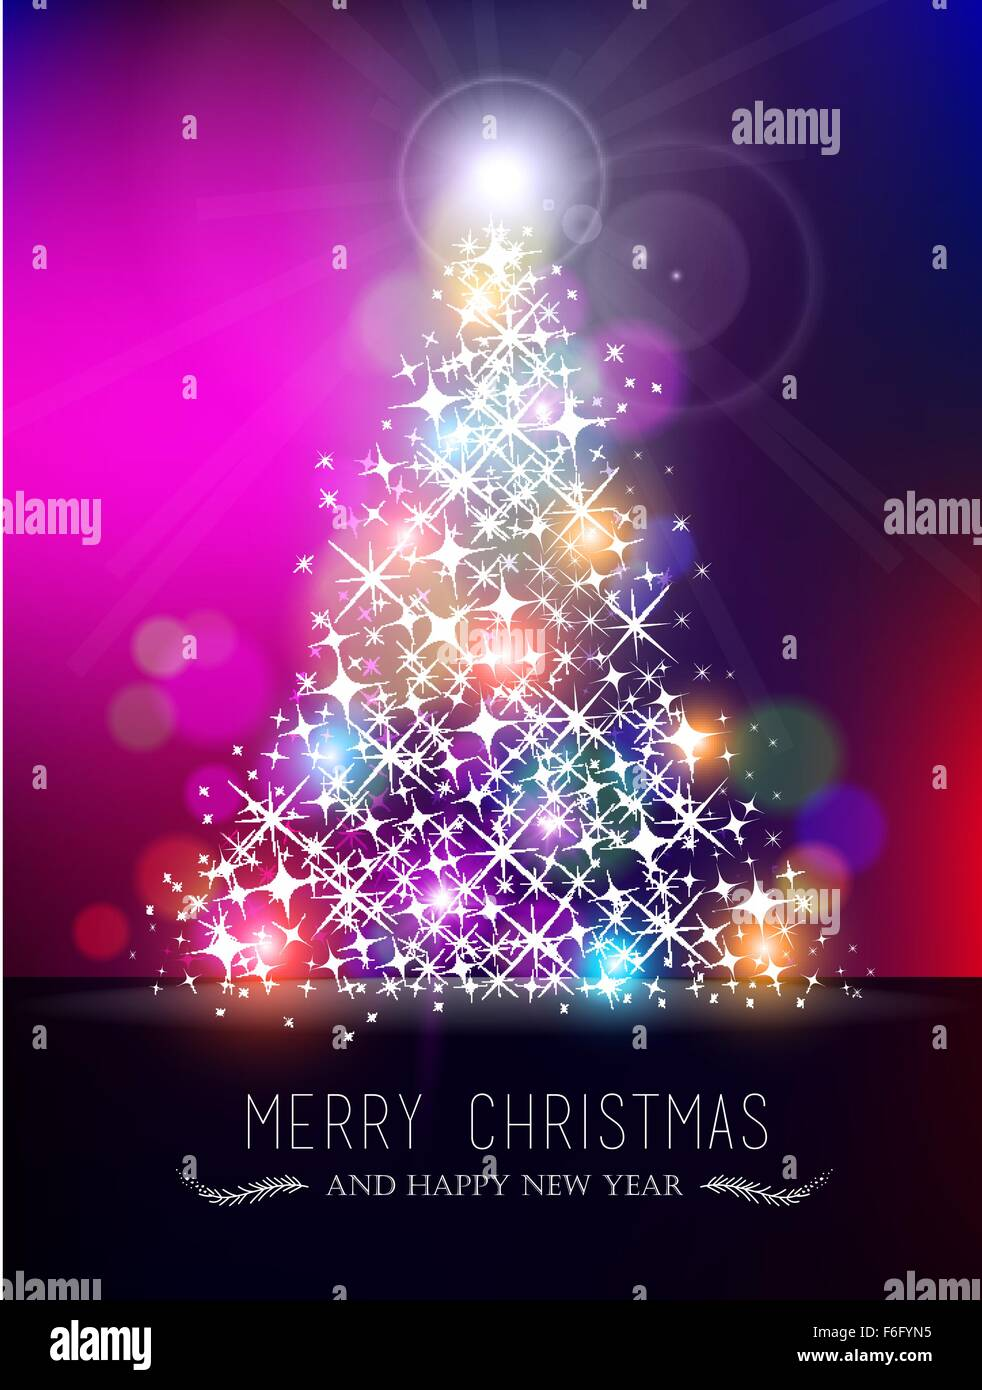 Merry Christmas happy new year bokeh style greeting card design ...